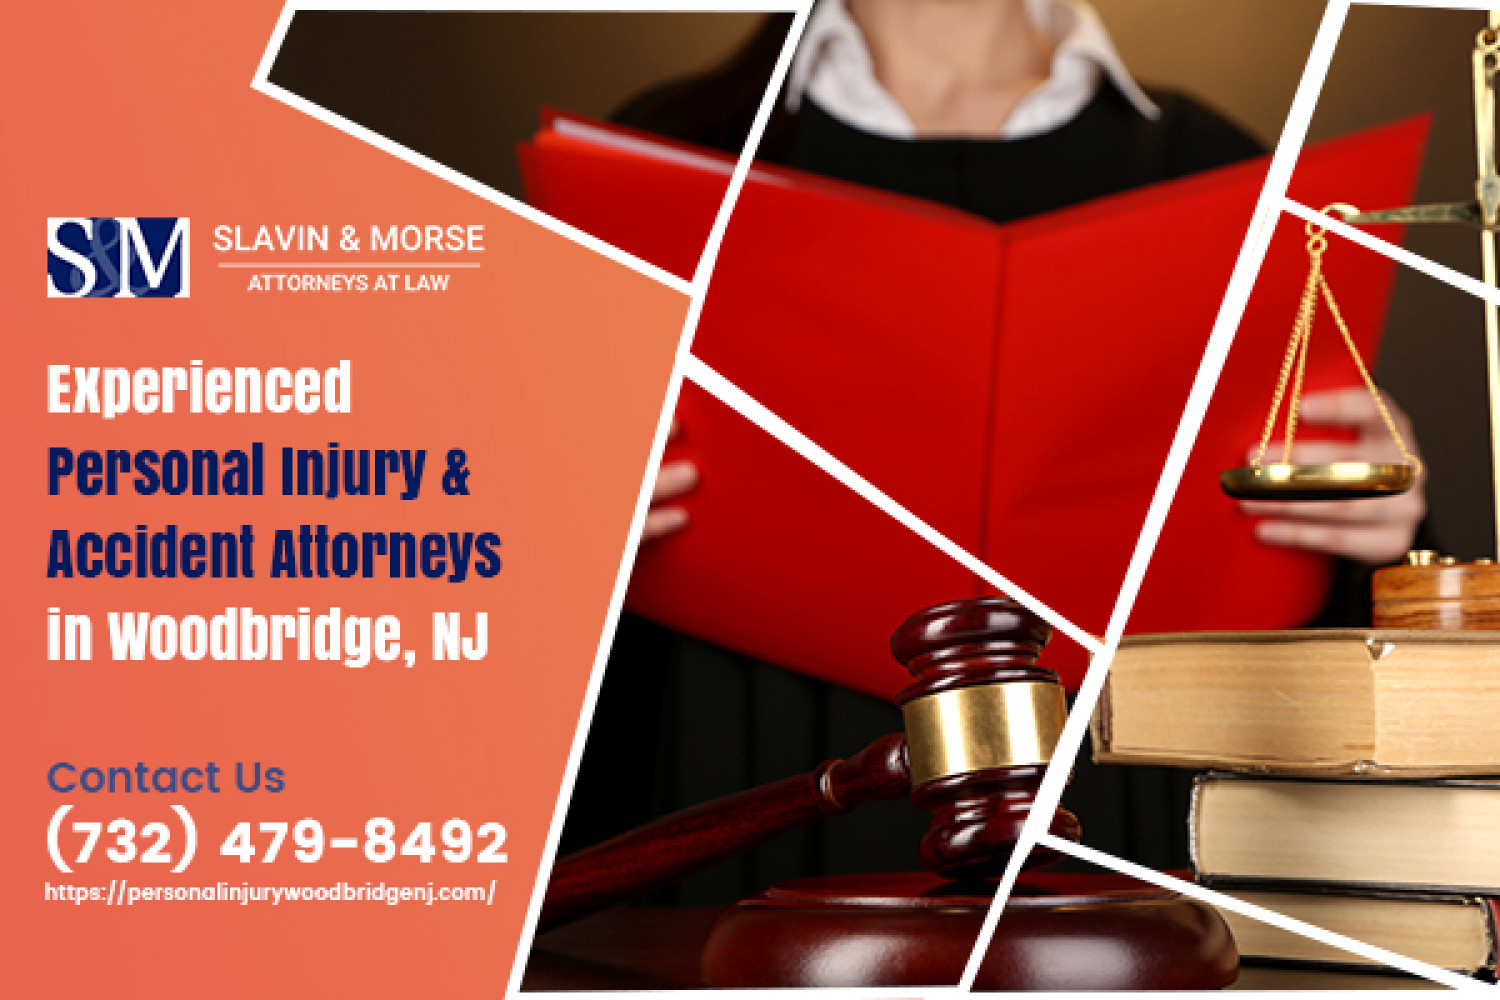 Best personal injury & accidents attorney in NJ Infographic